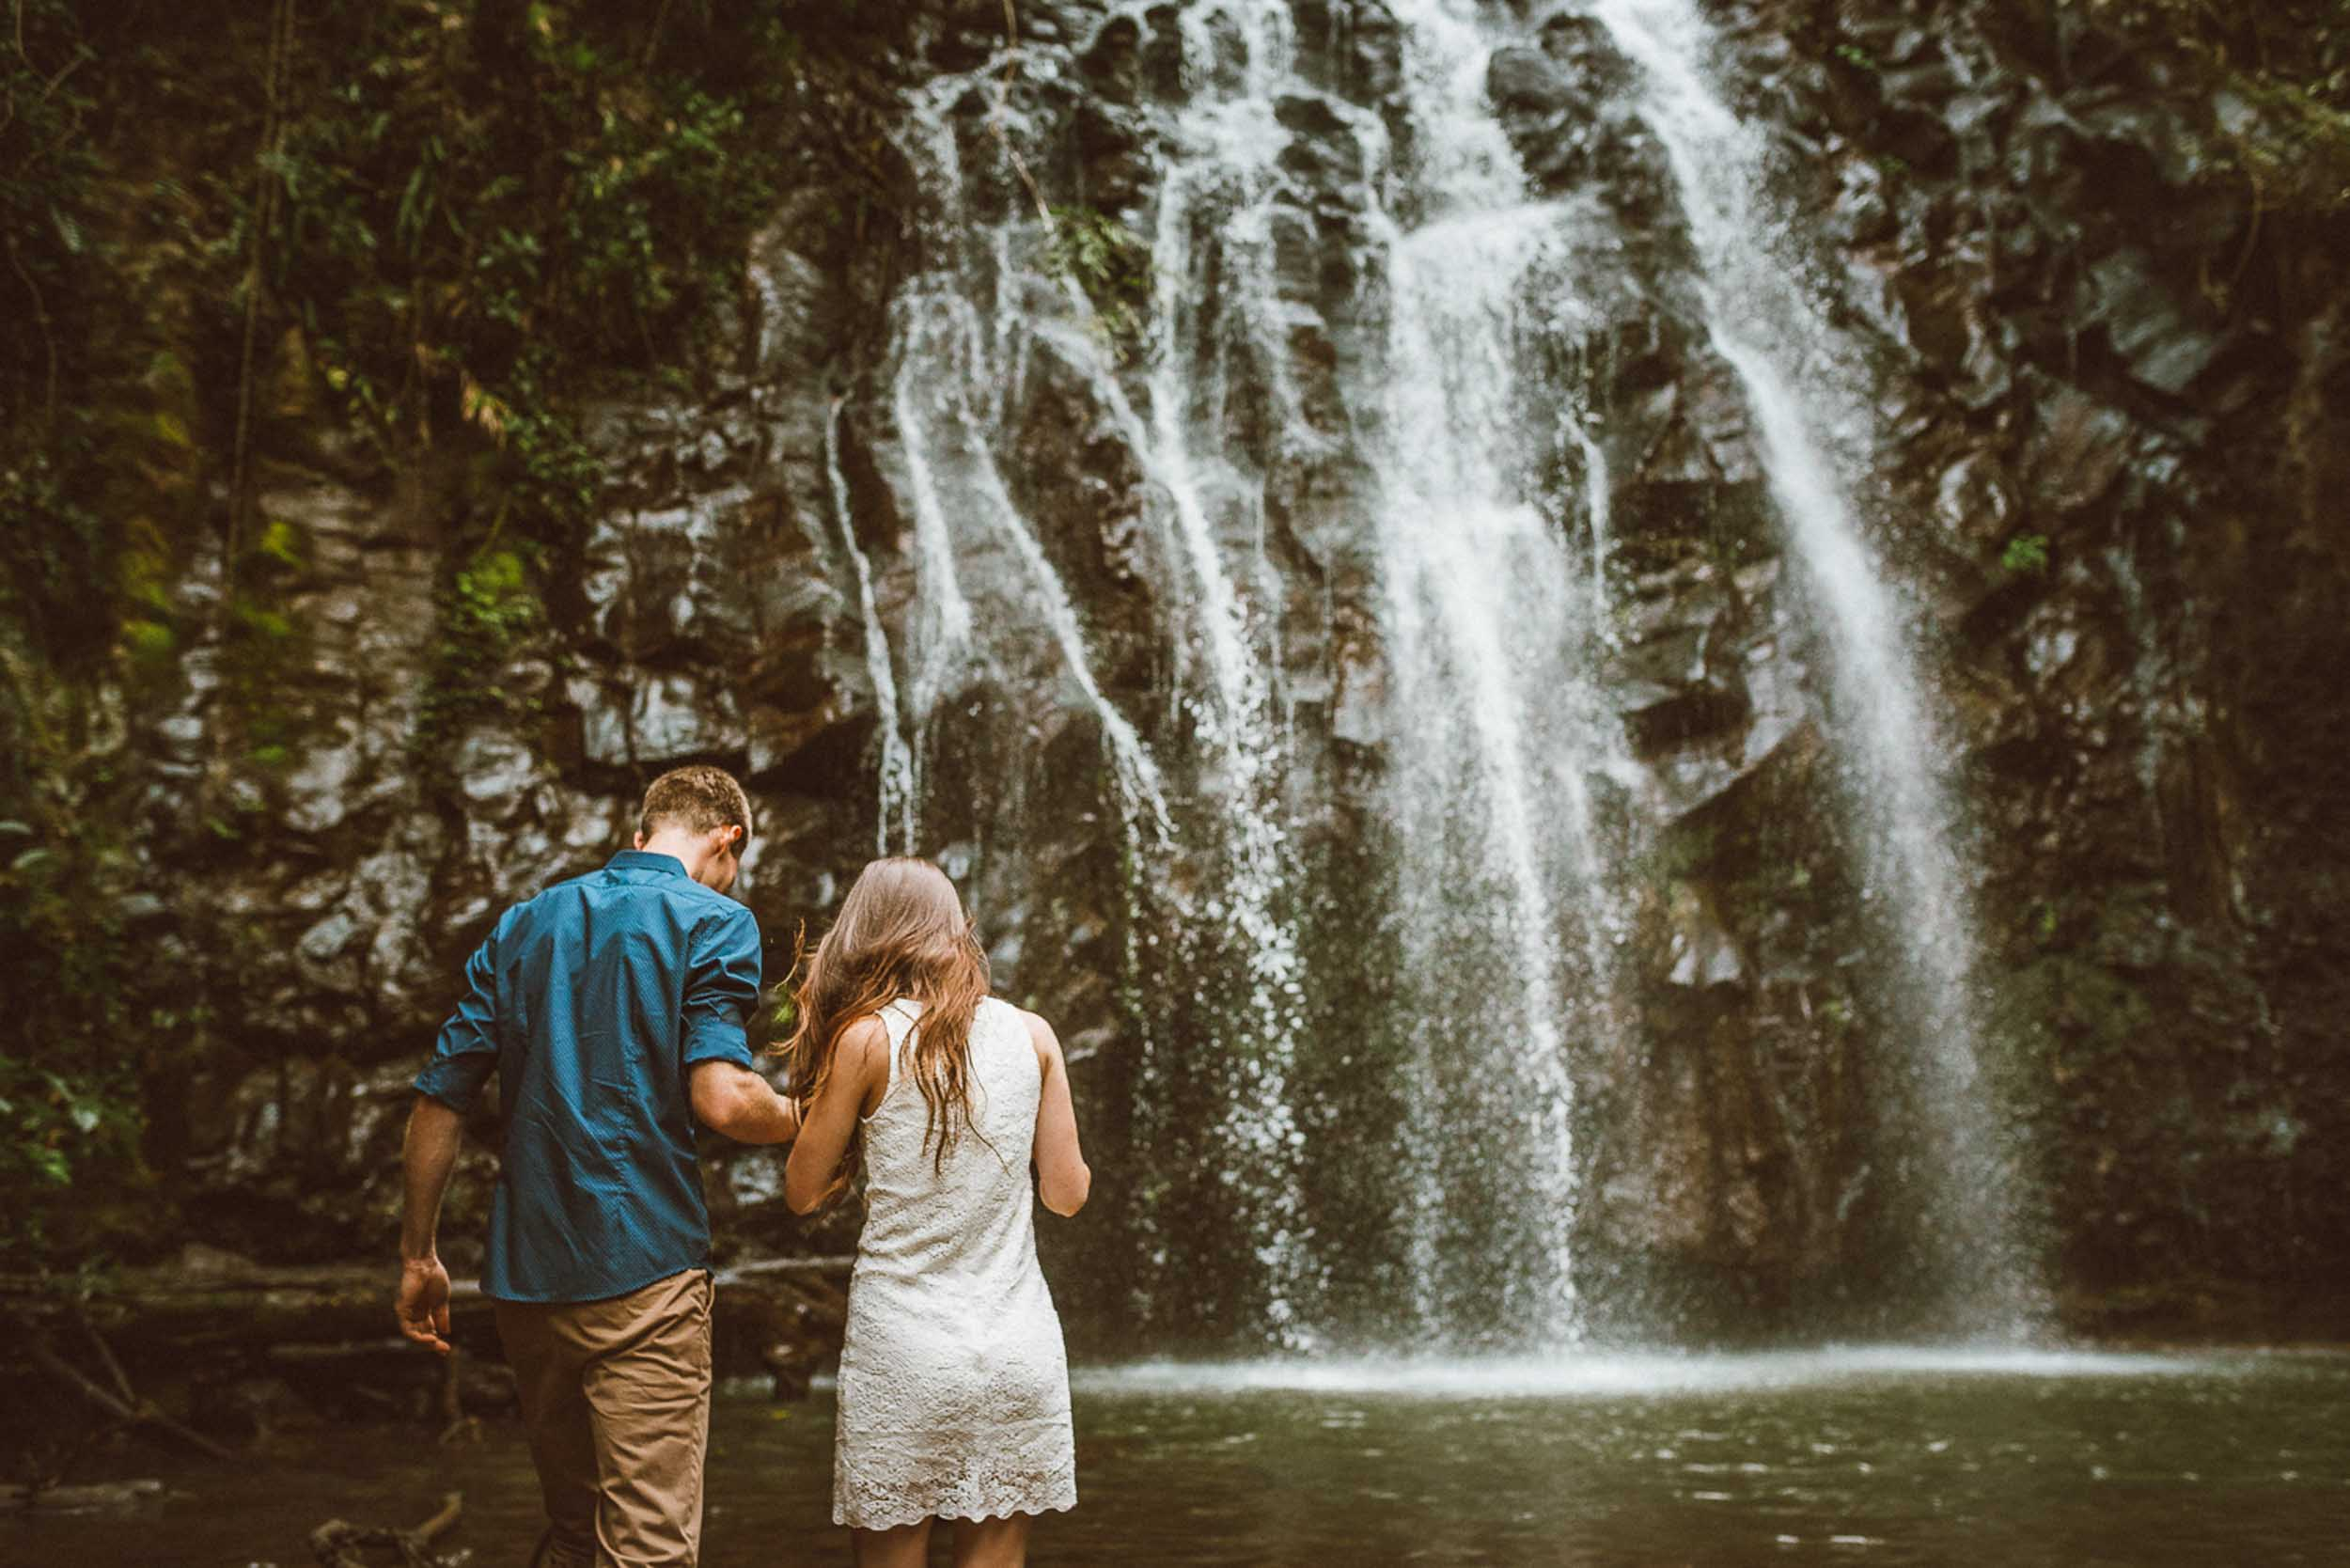 The Raw Photographer - Wedding Photographer - Tablelands Mareeba Atherton Engagement- Couple Session Photos in Cairns - Engaged Price - Rainforest Waterfall Queensland - photoshoot-20.jpg